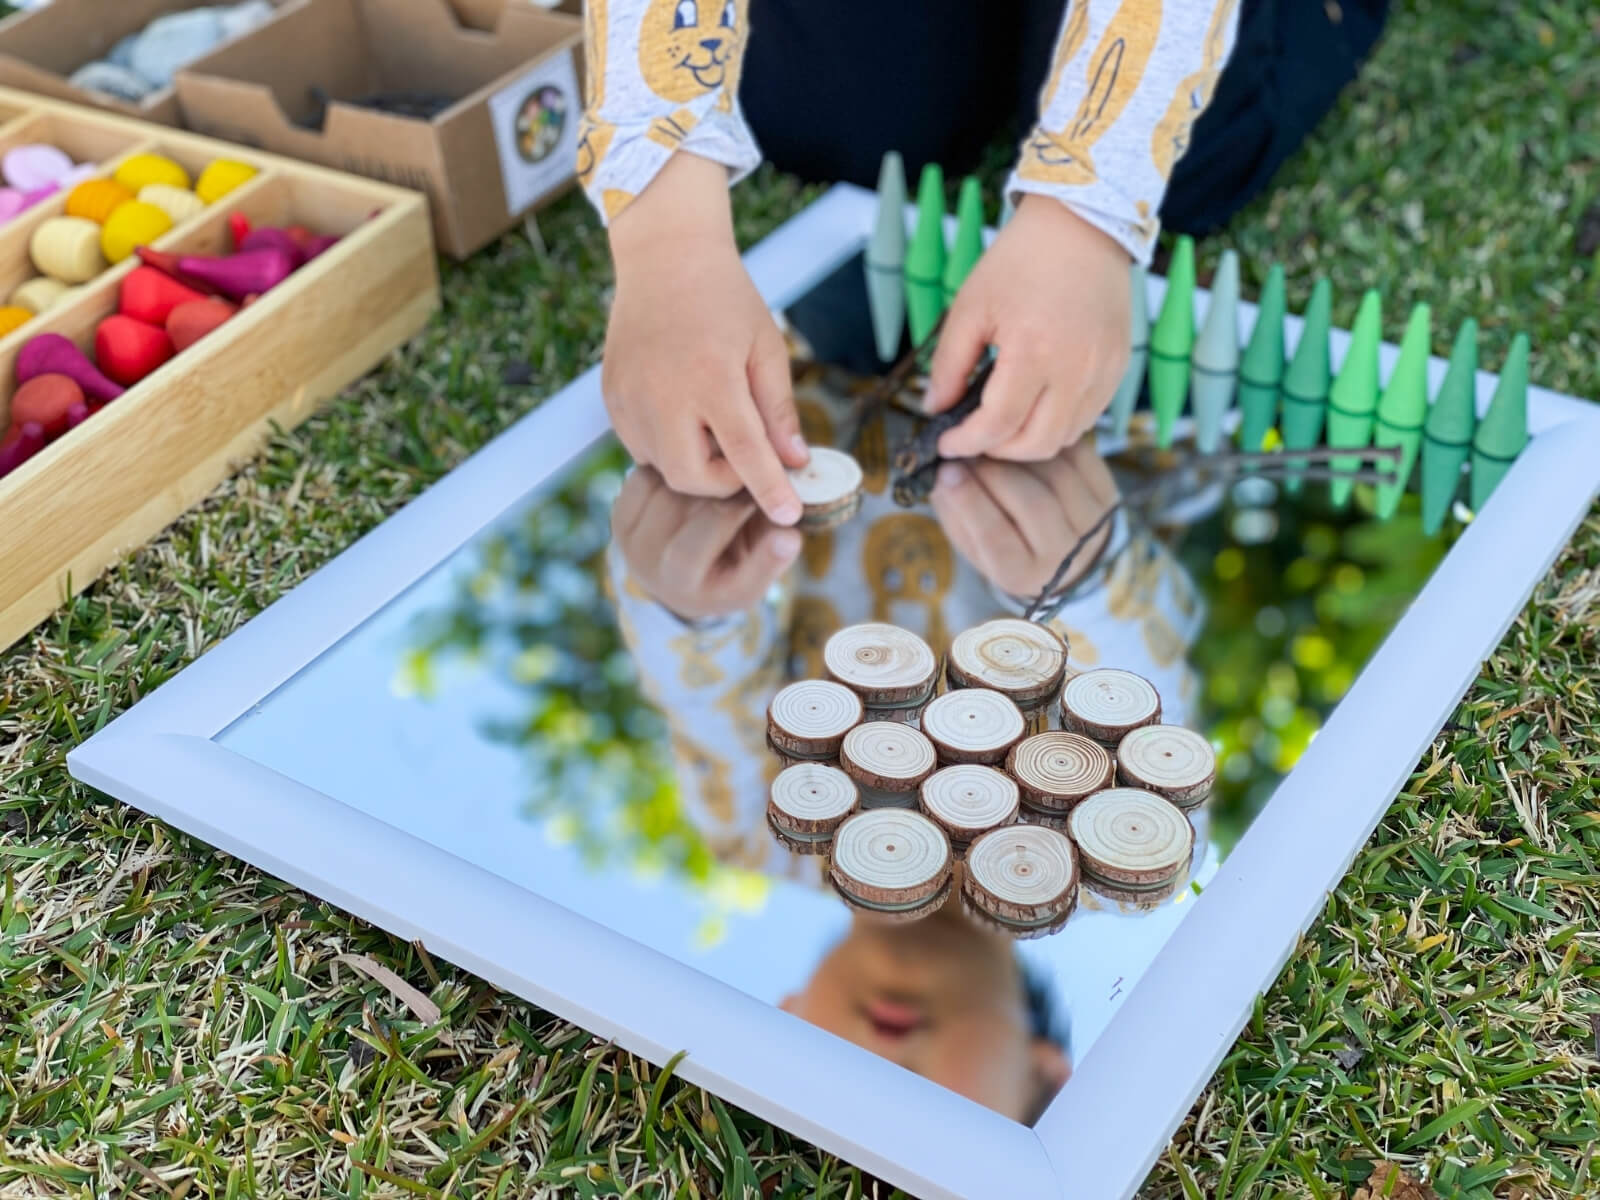 Invite children to create transient art with the loose parts